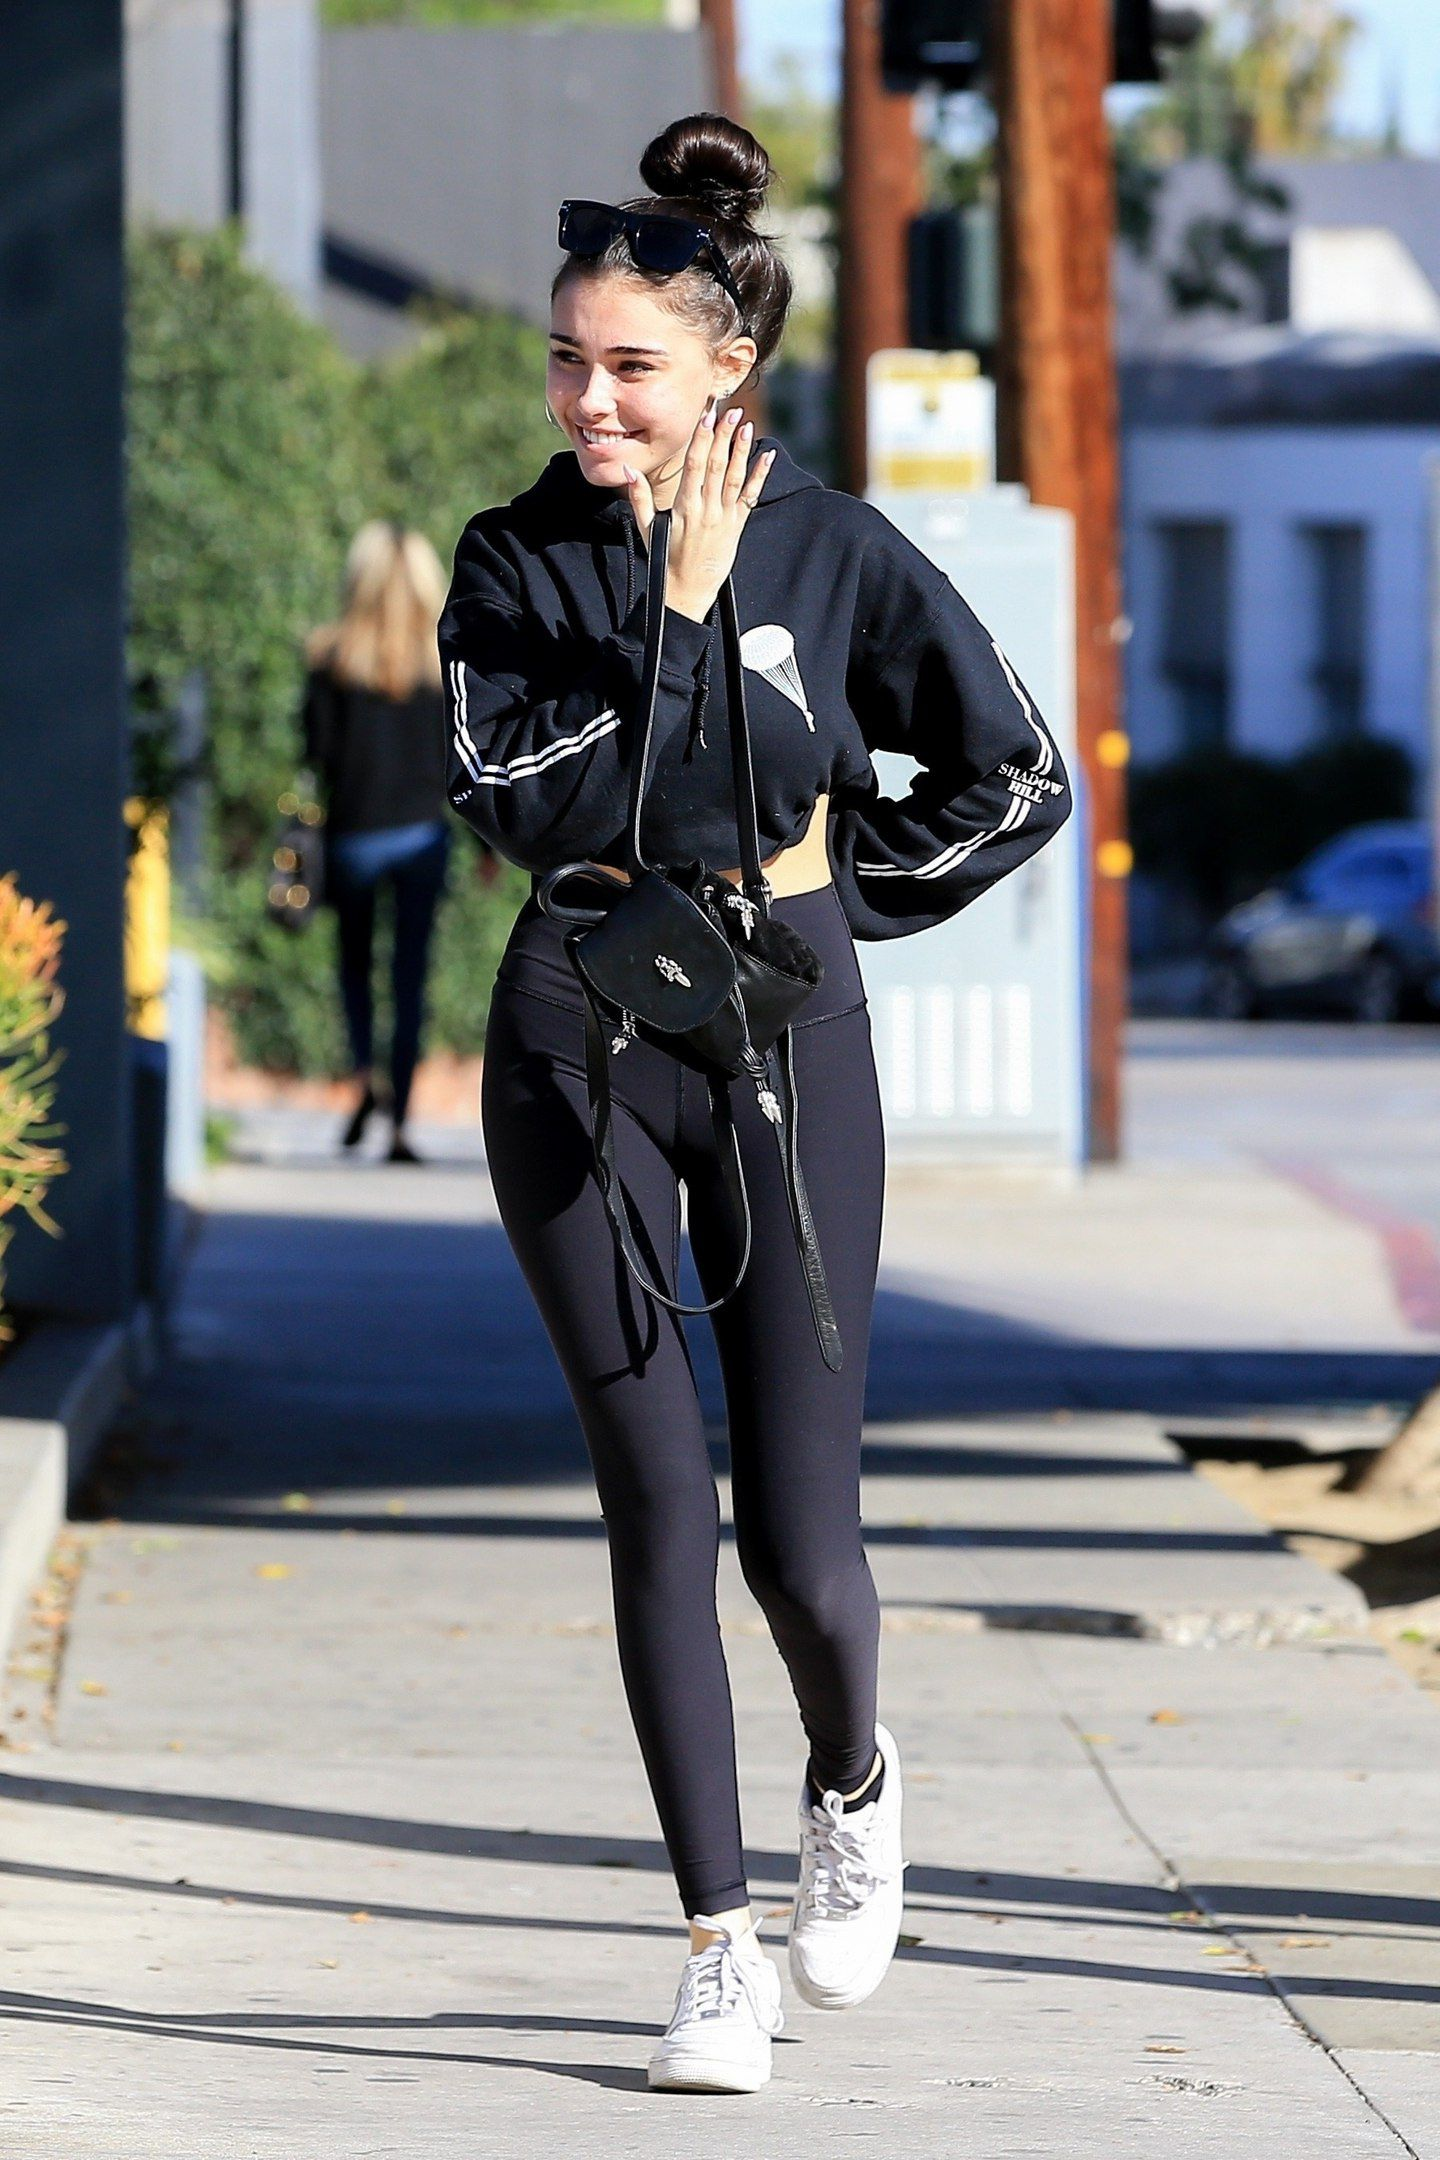 madison-beer-cameltoe-while-out-for-lunch-in-west-hollywood-3112